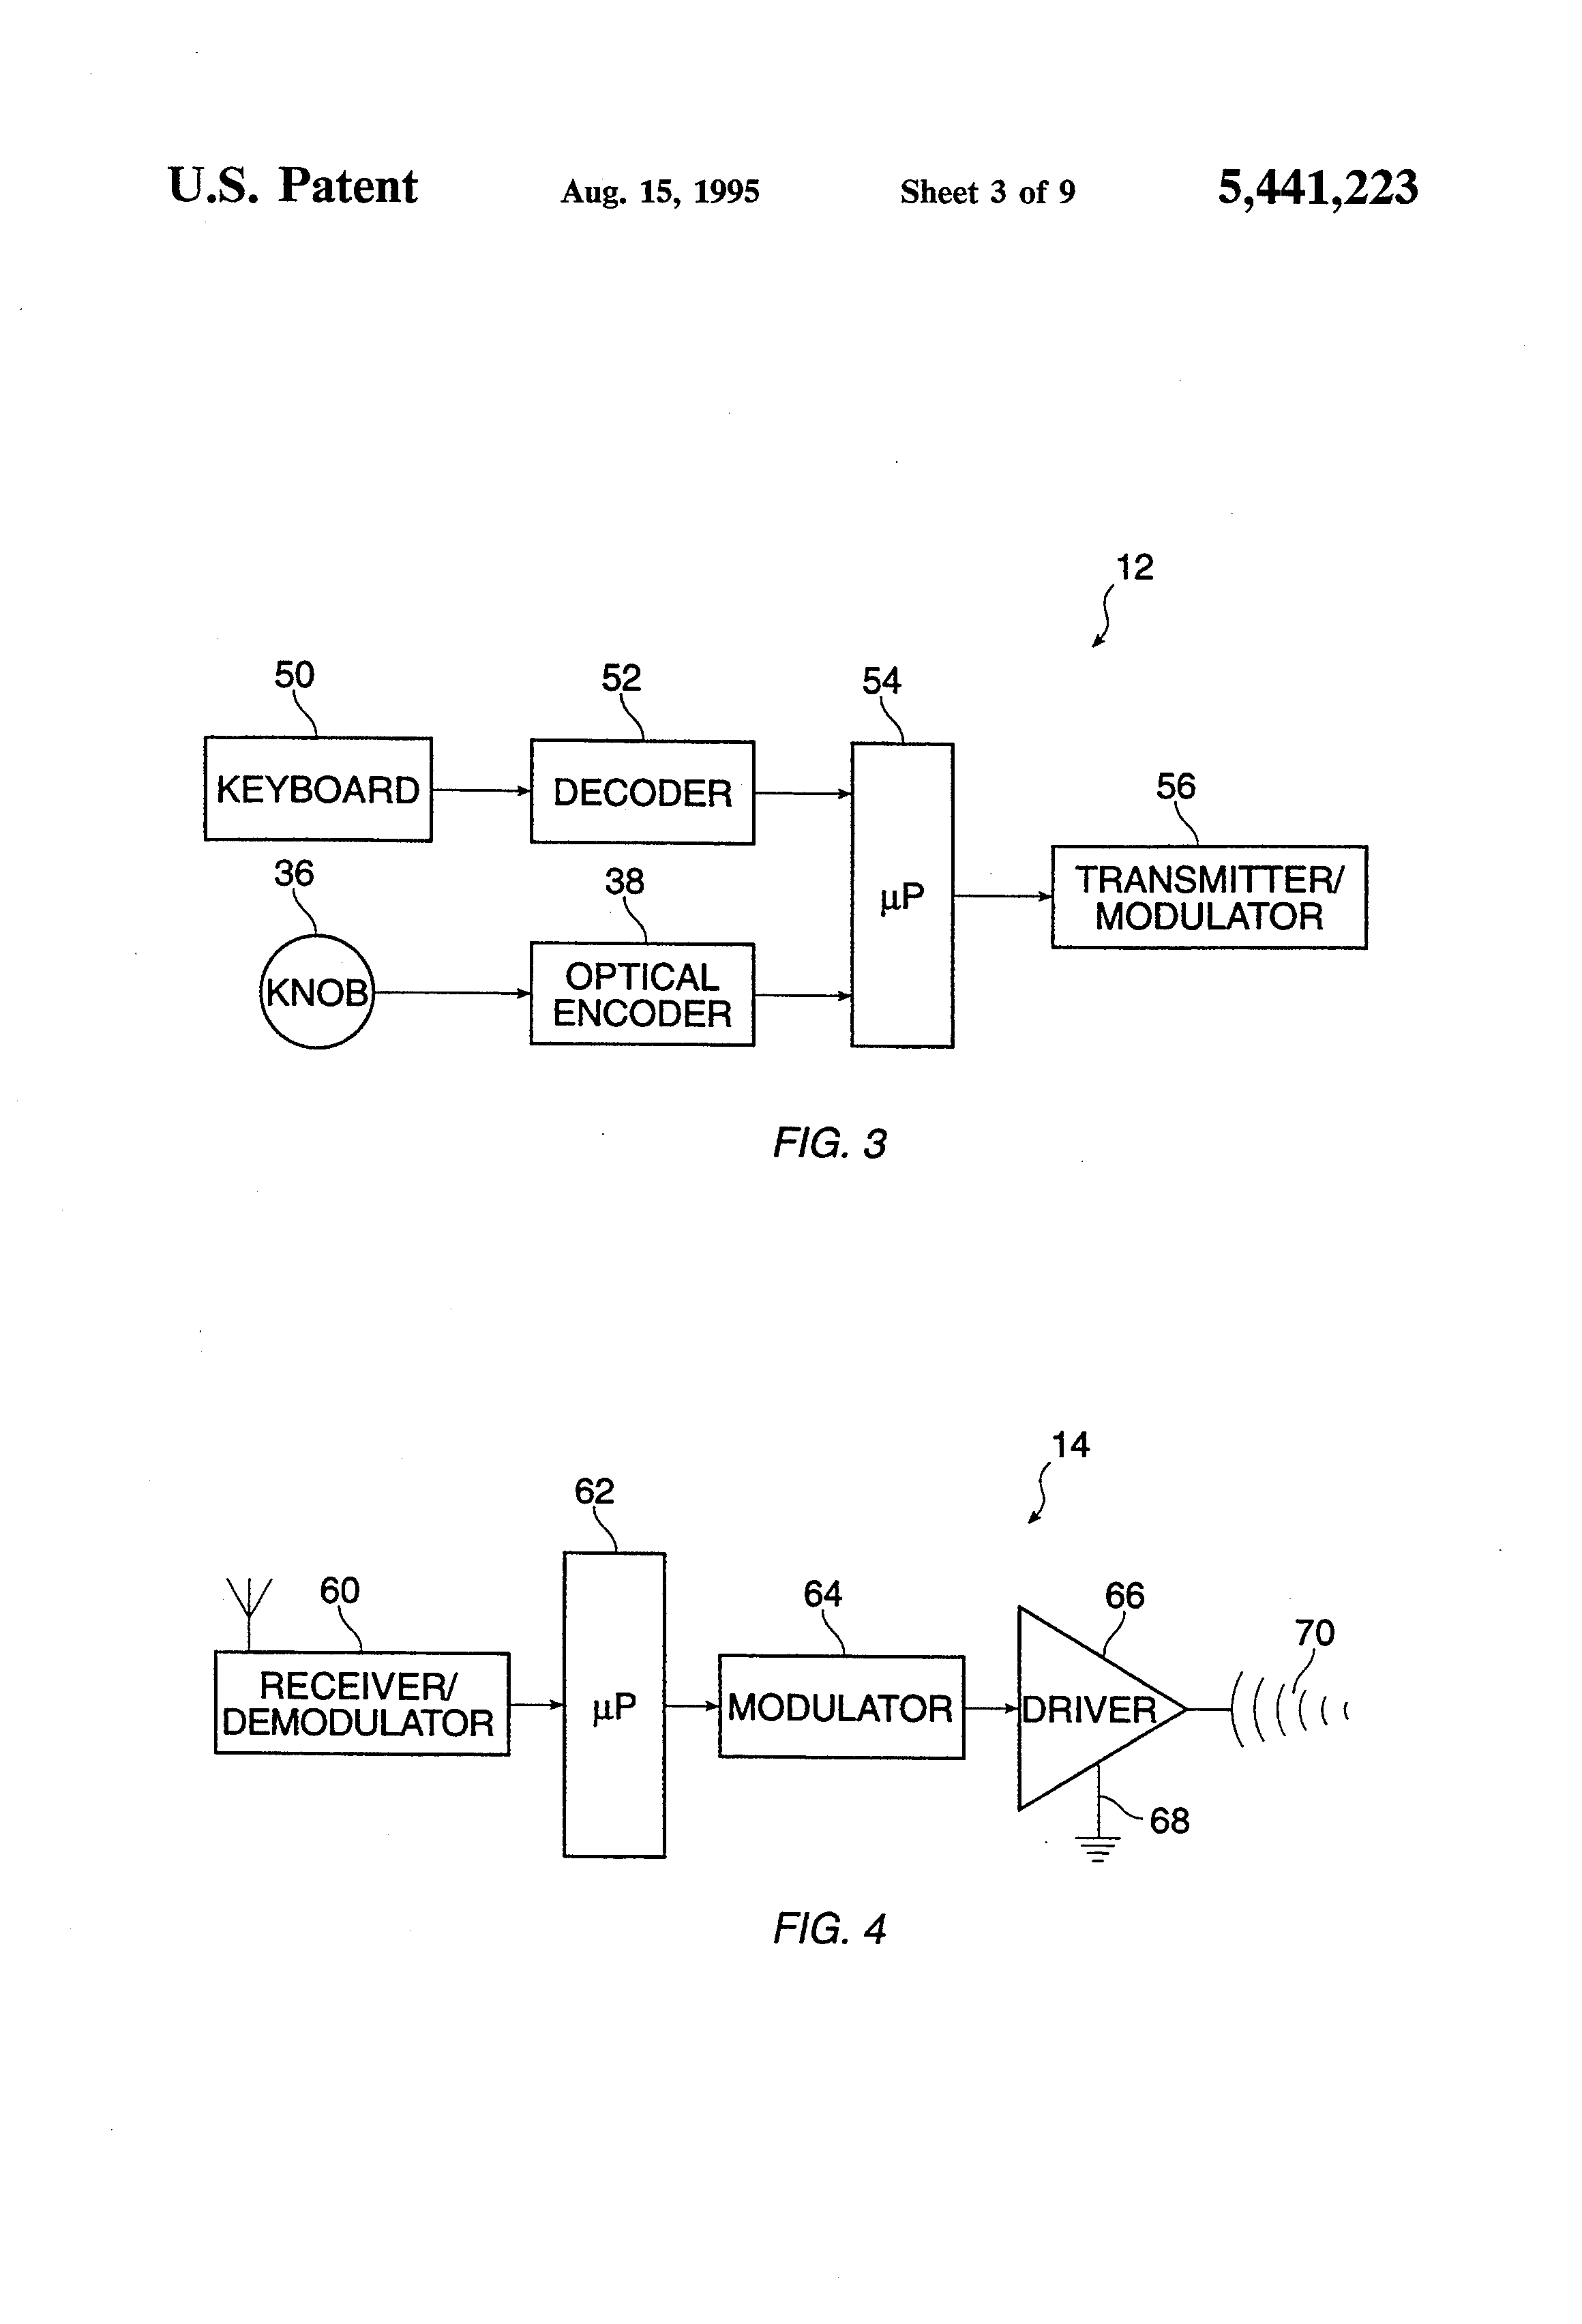 Radio Frequency Modulator Circuit Diagram Motorcontrol Control Patent Us5441223 Model Train Controller Using Electromagnetic Field Drawing